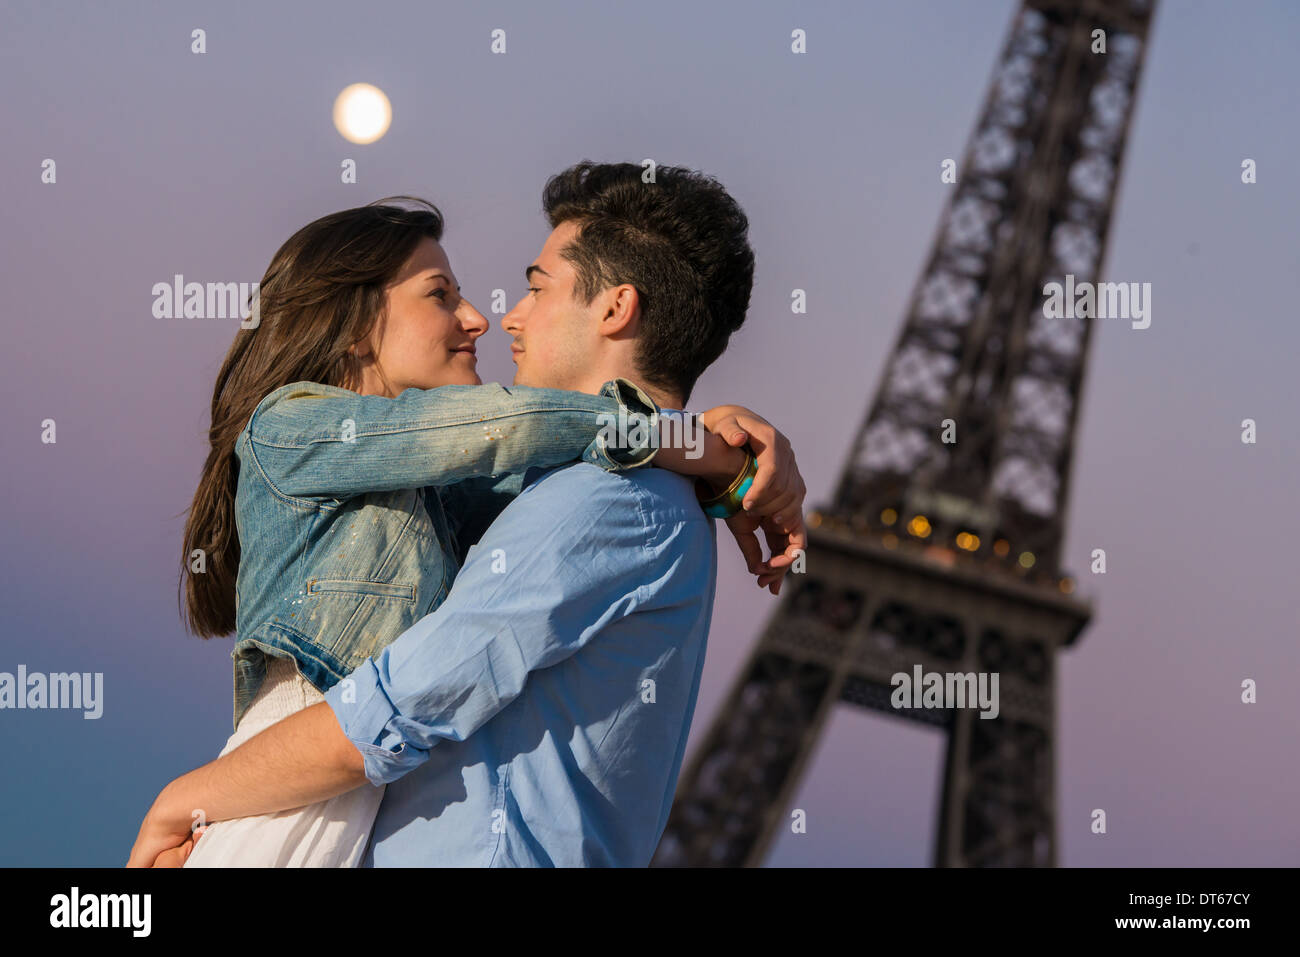 Young Couple Embracing In Moonlight Paris France